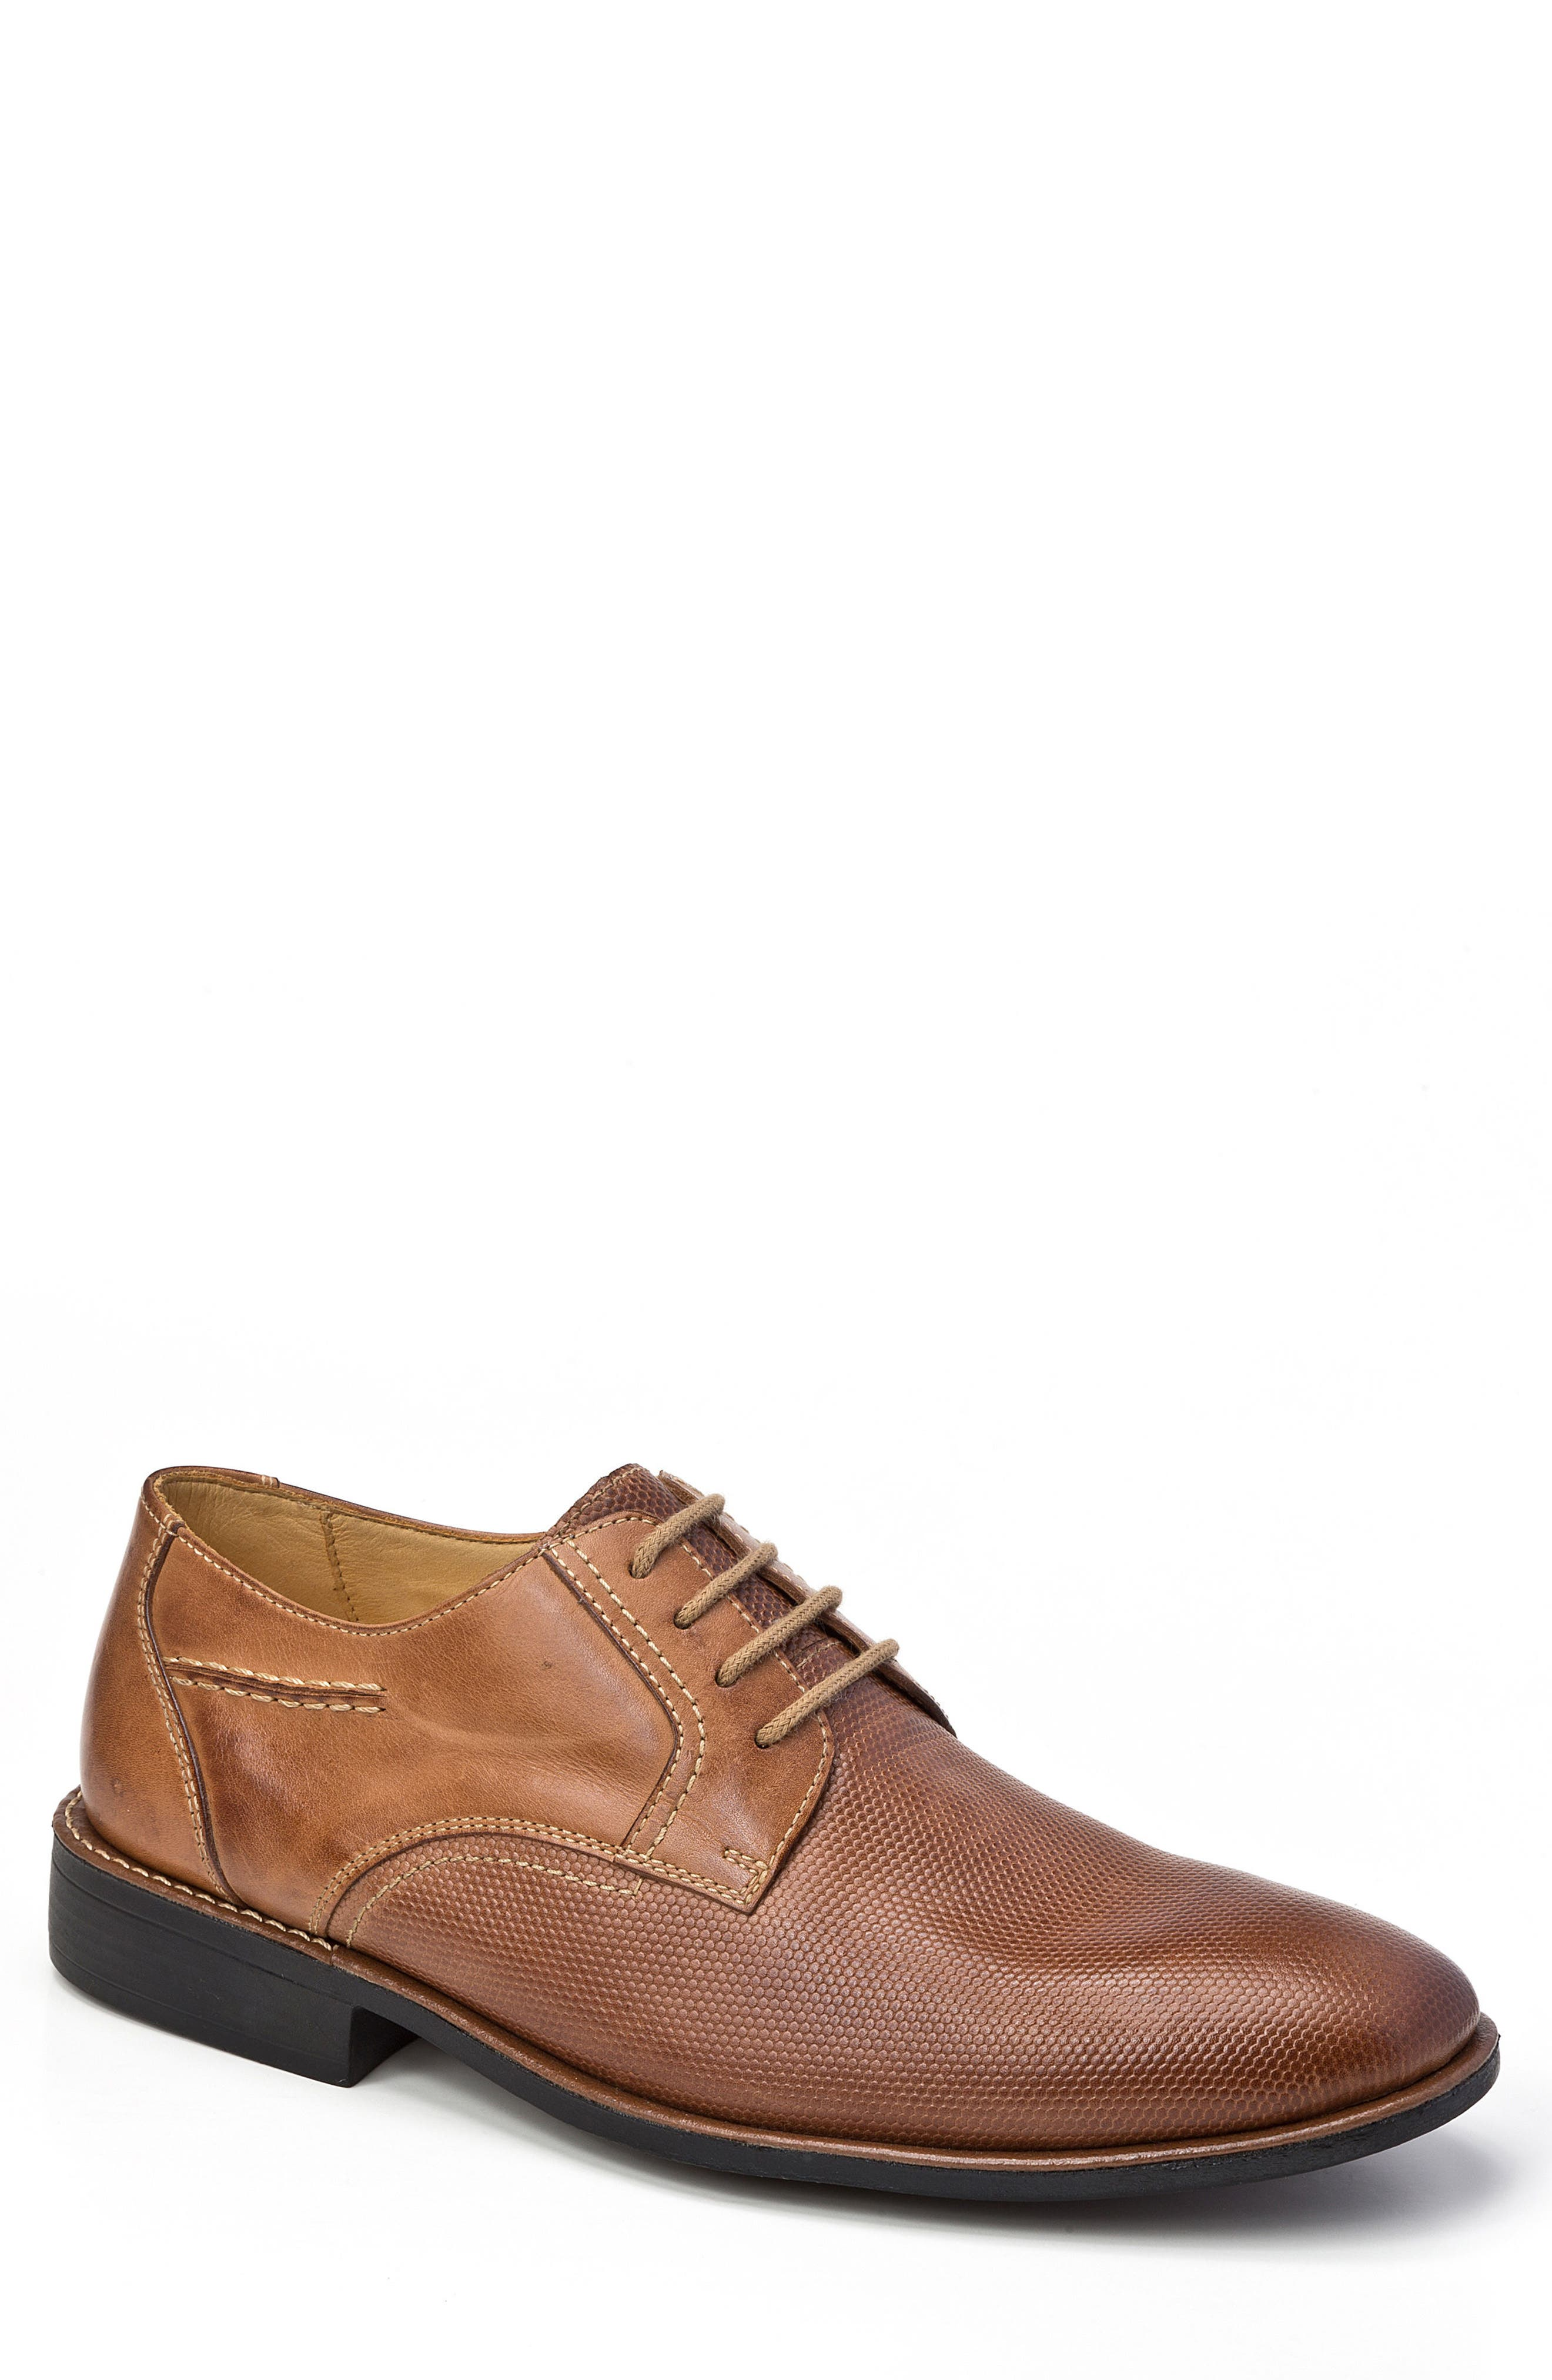 Trenso Plain Toe Derby,                         Main,                         color, Tan Leather